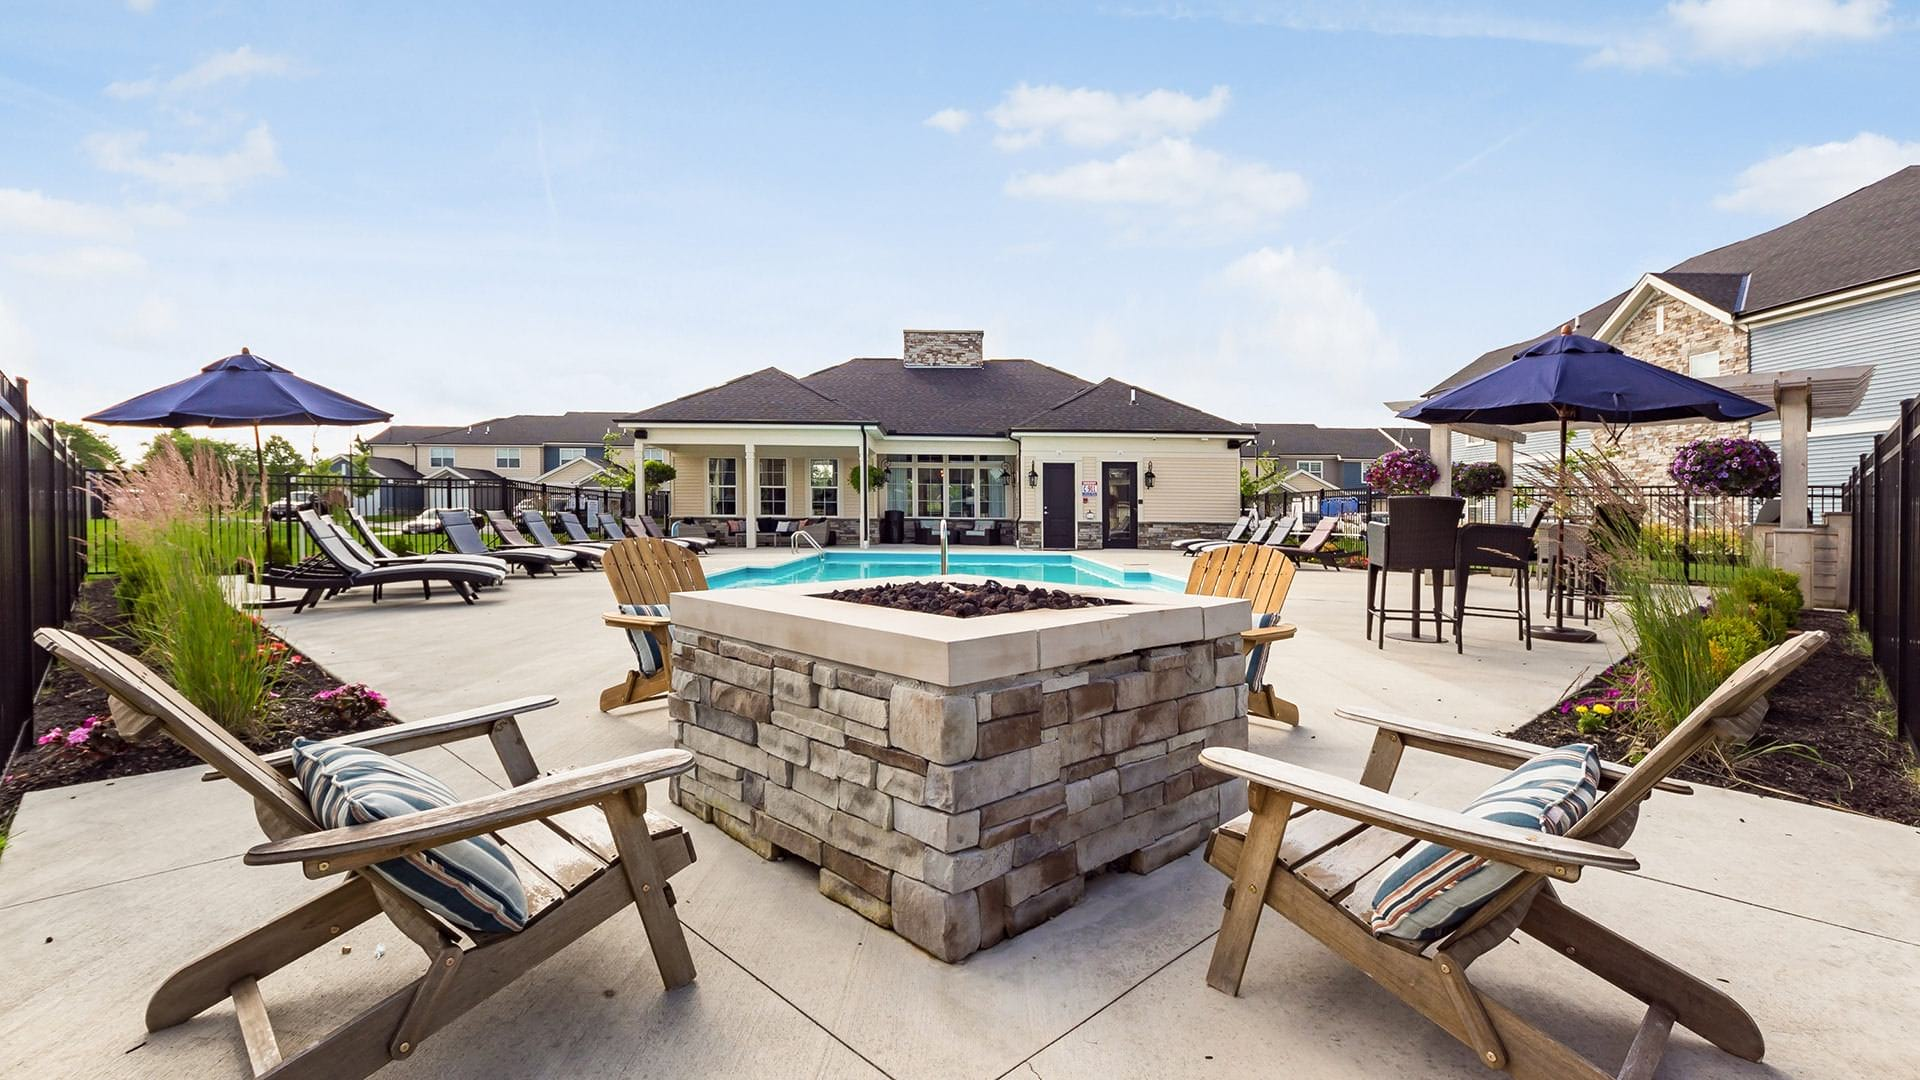 outdoor fire pit with lounge chairs next to pool